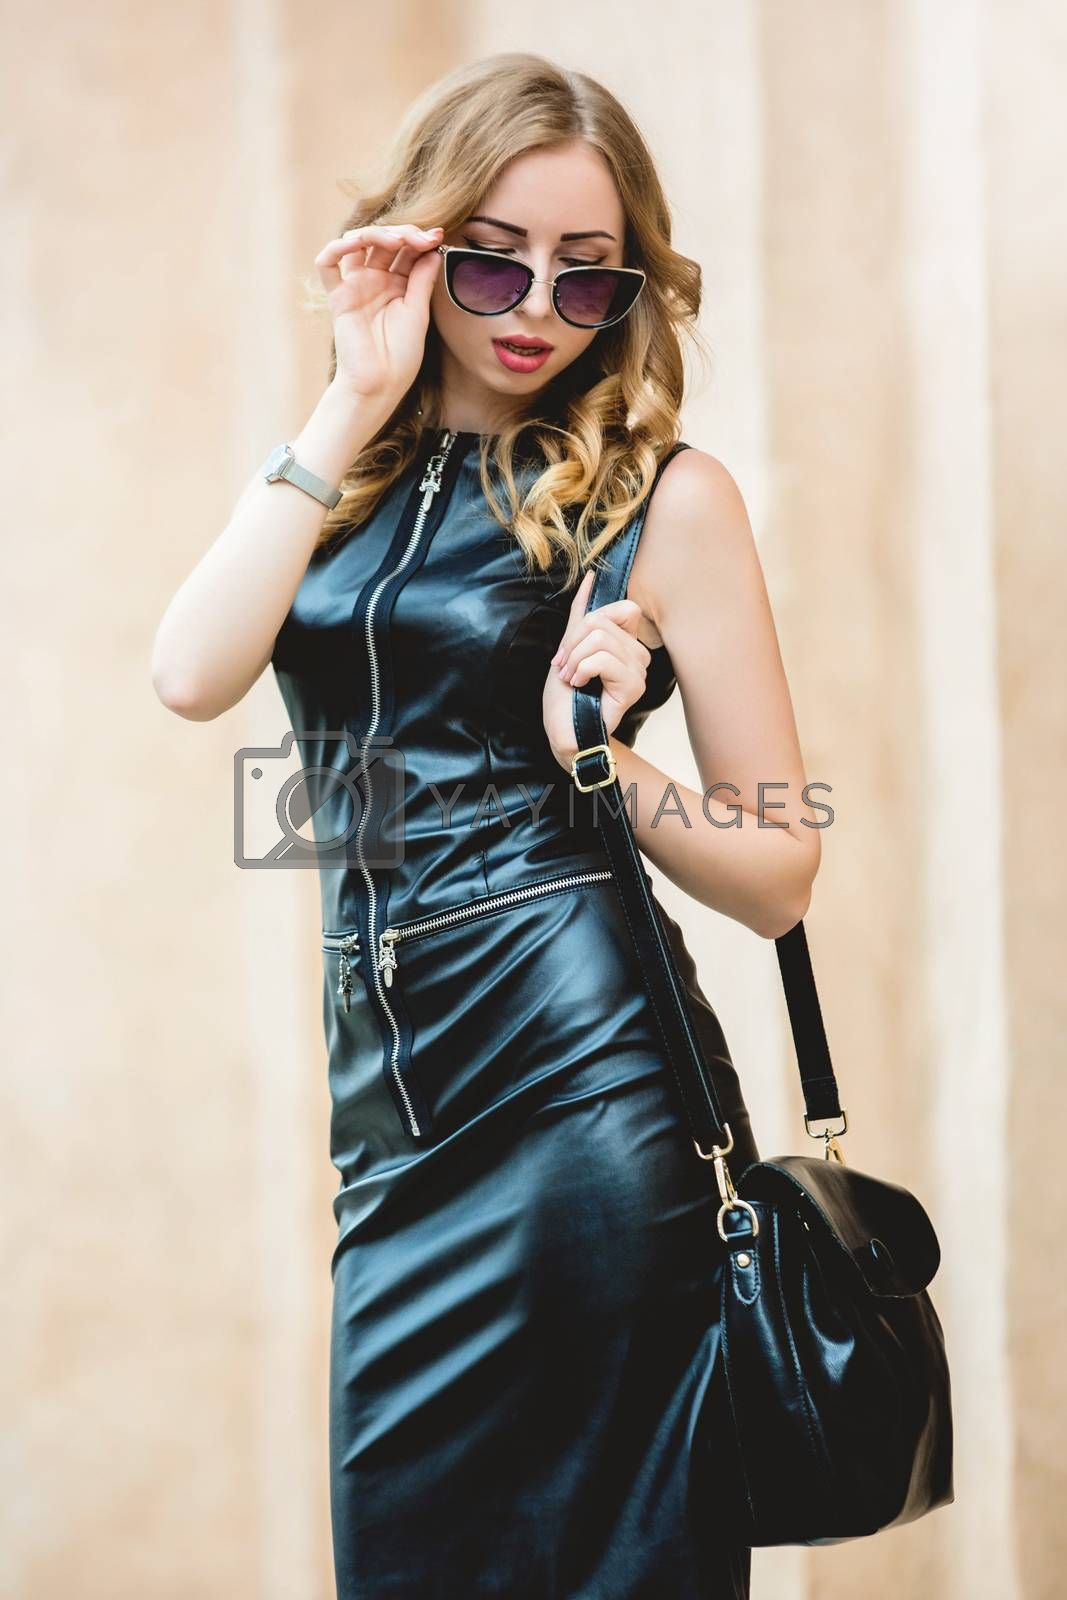 glamorous woman with glasses dressed in a black stylish dress after shopping. shopping time concept.